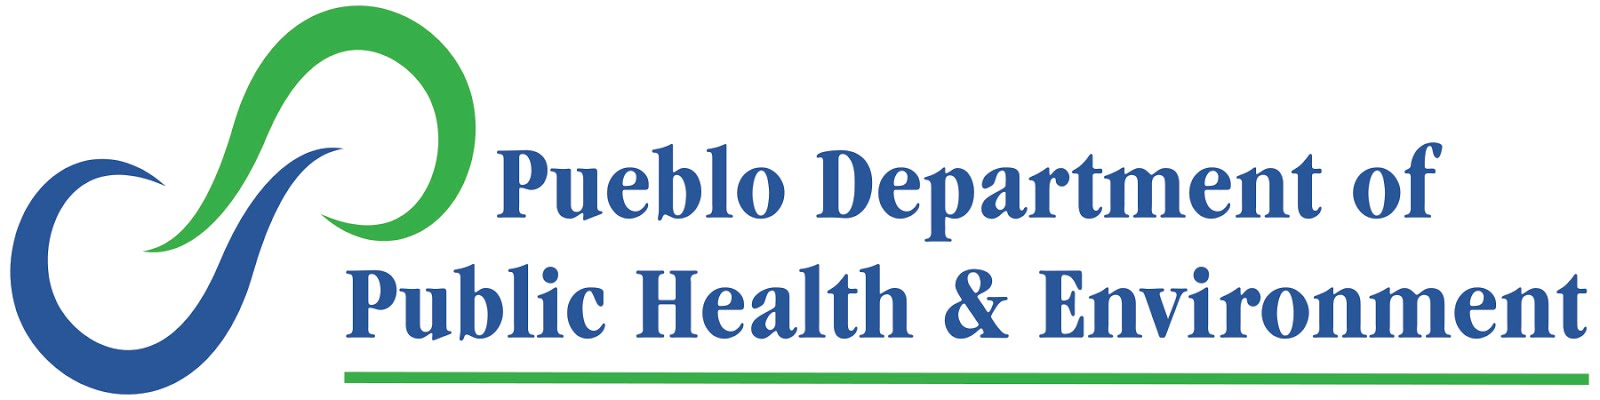 For a list of all of our services, go to pueblohealth.org or click our logo below